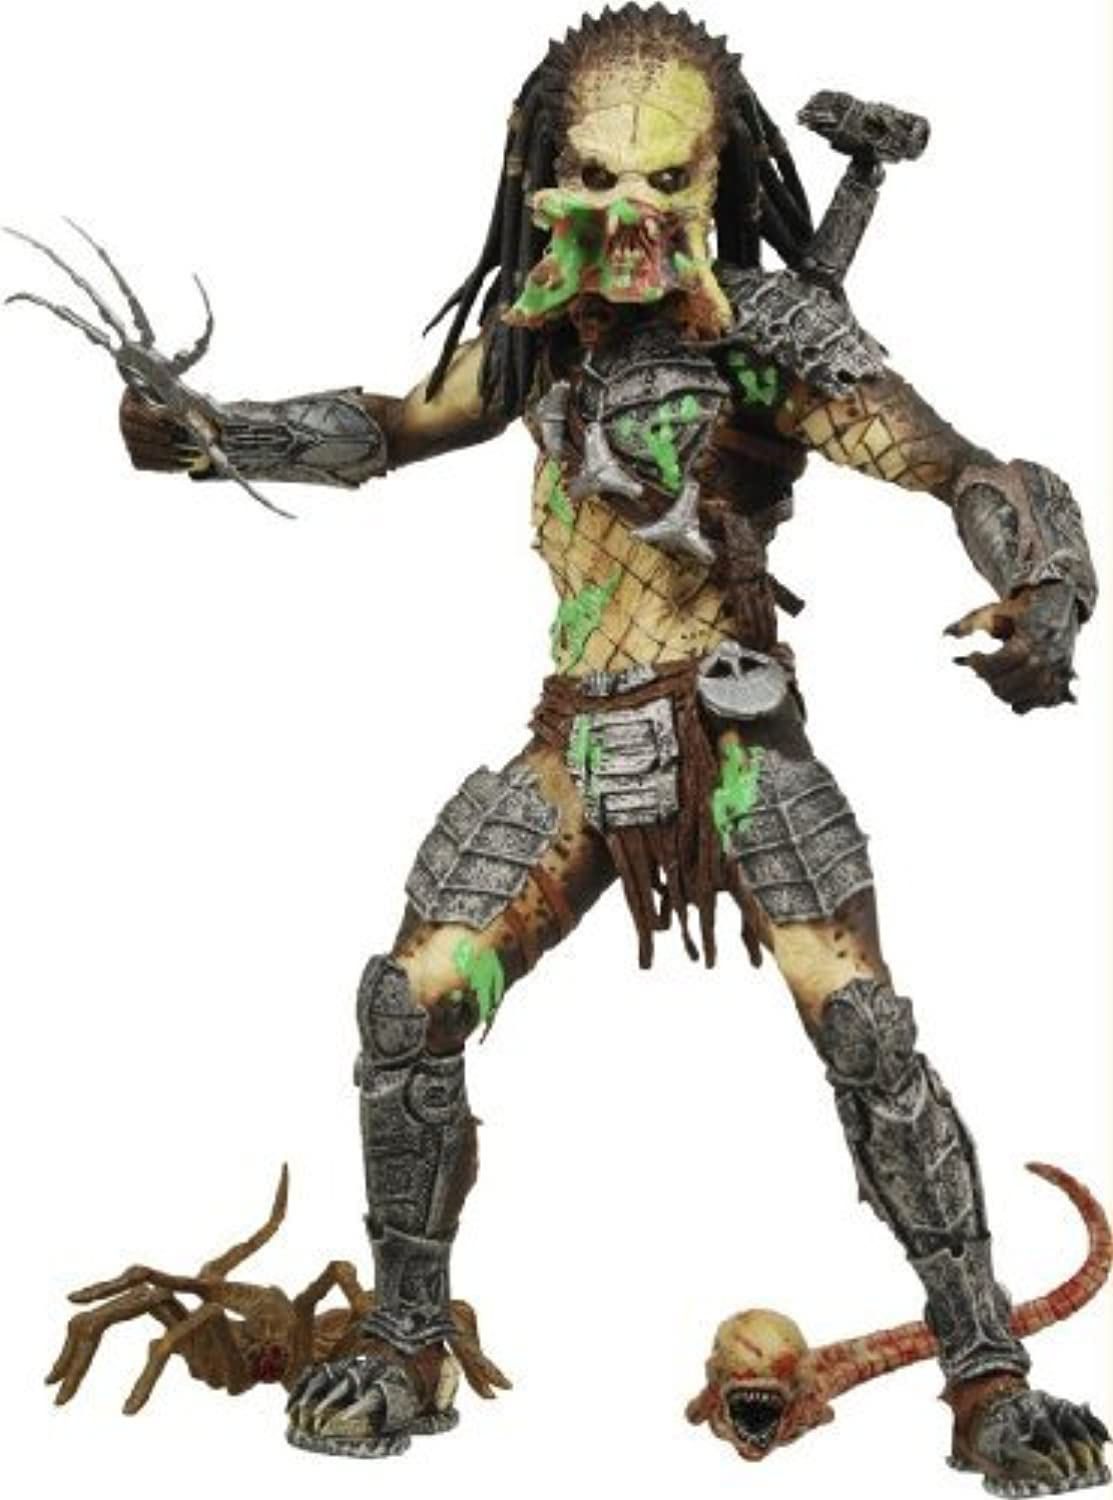 Alien VS. Predator  Requiem NECA Action Figure Series 4 Battle Damaged Unmasked Predator by Alien Predator